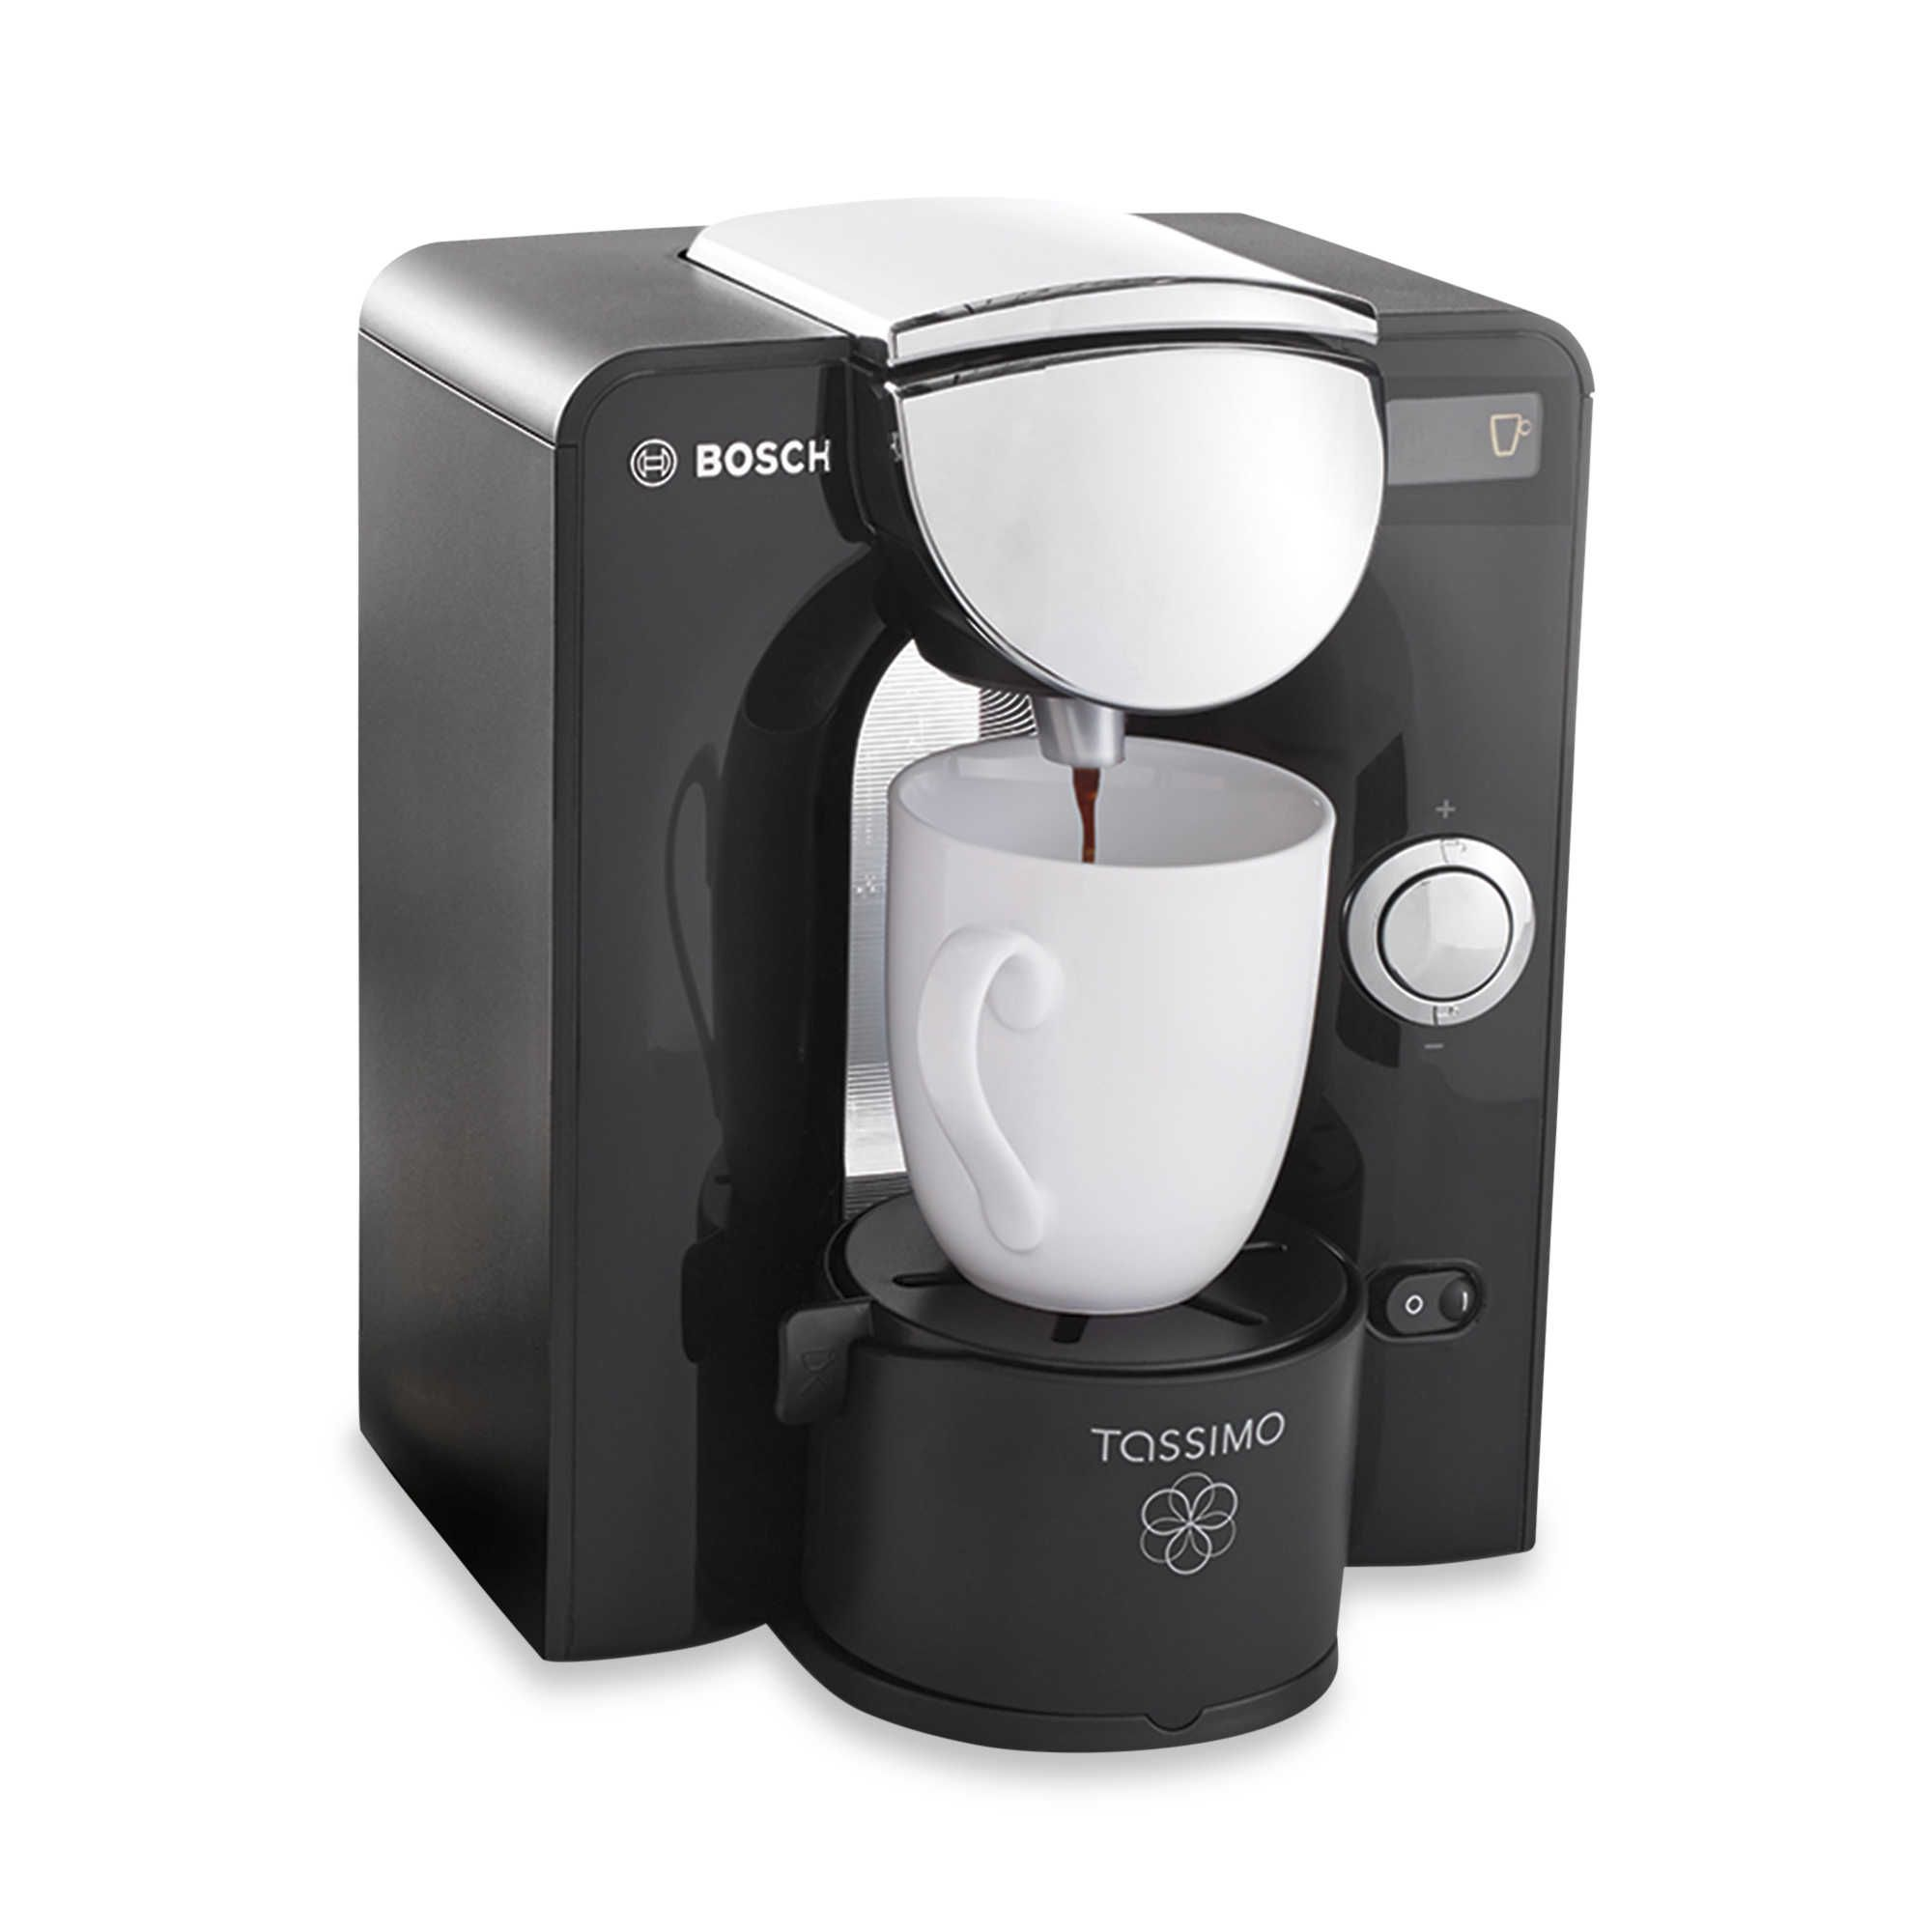 Bosch tassimo t55 single cup home brewing system home